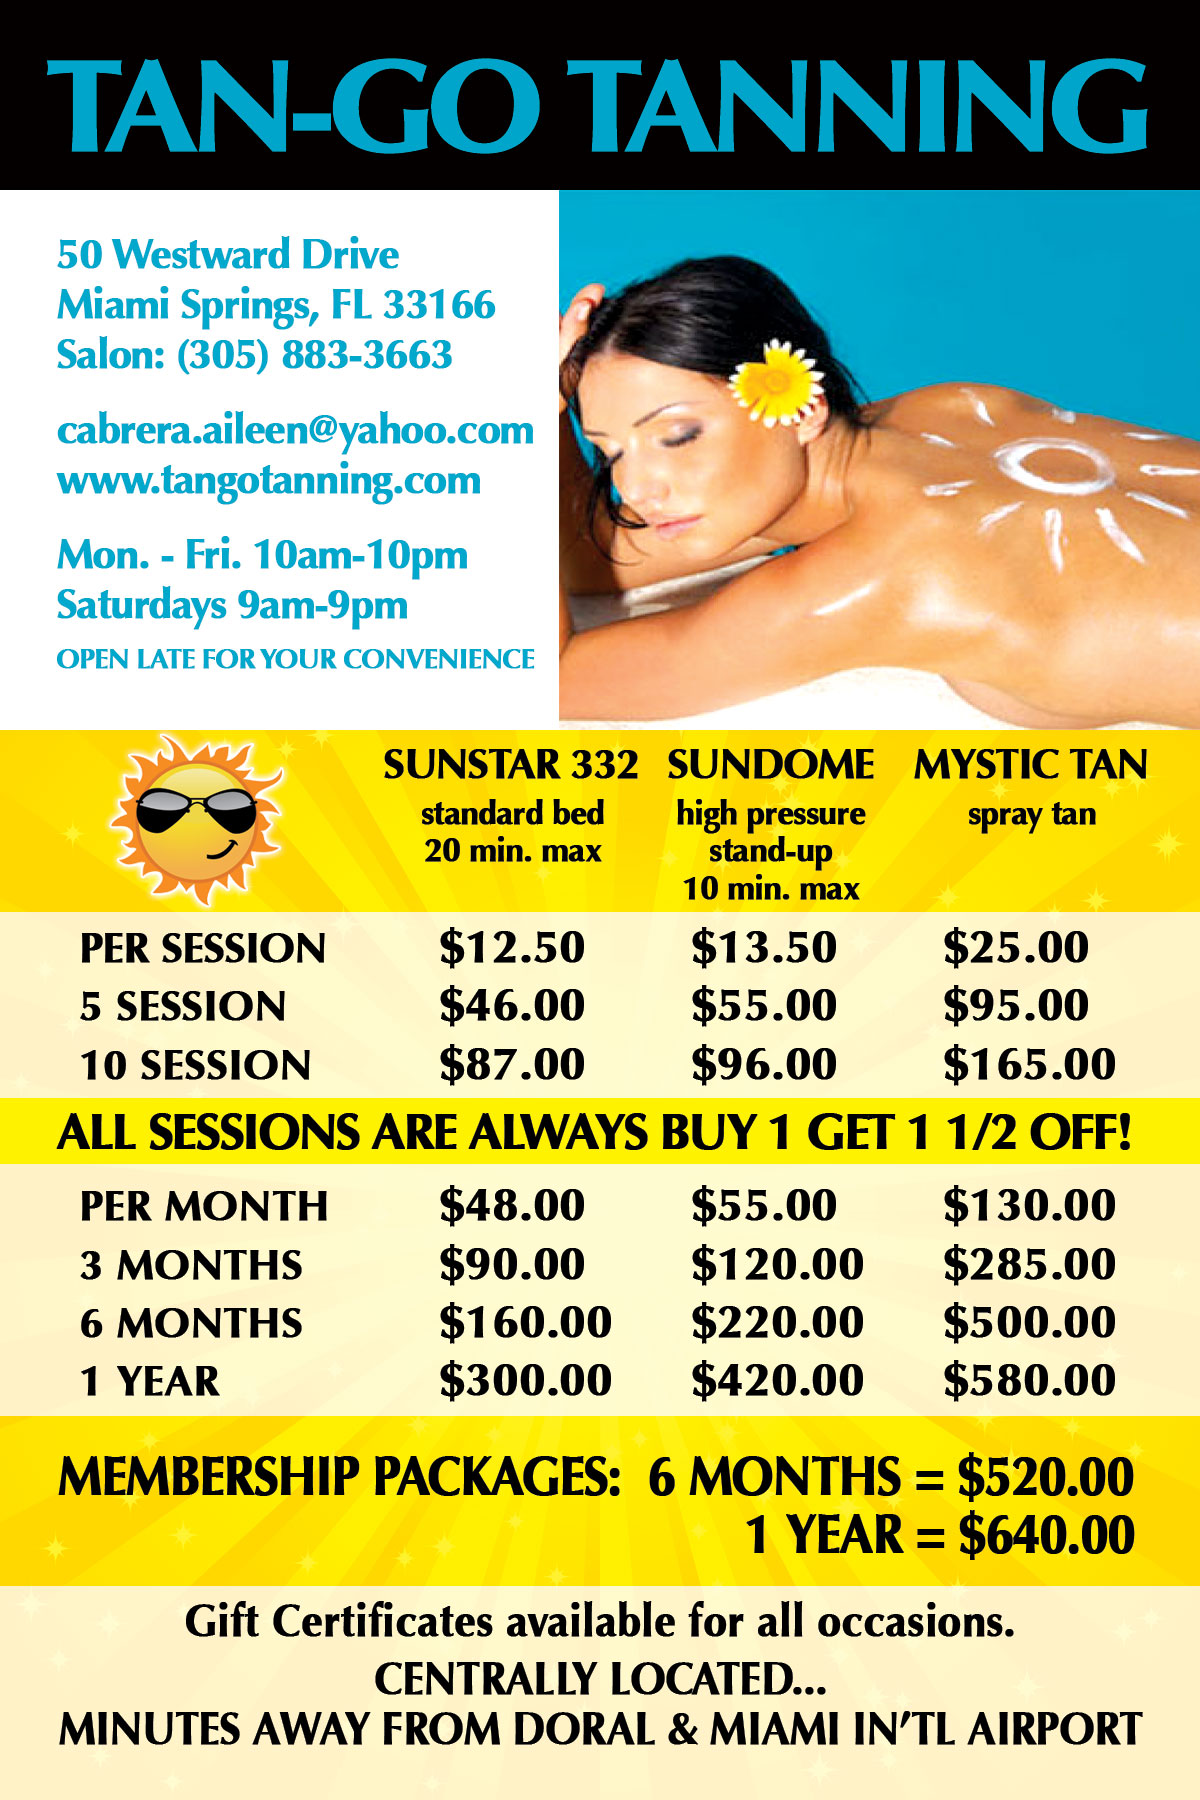 example of a flyer for an advertisement